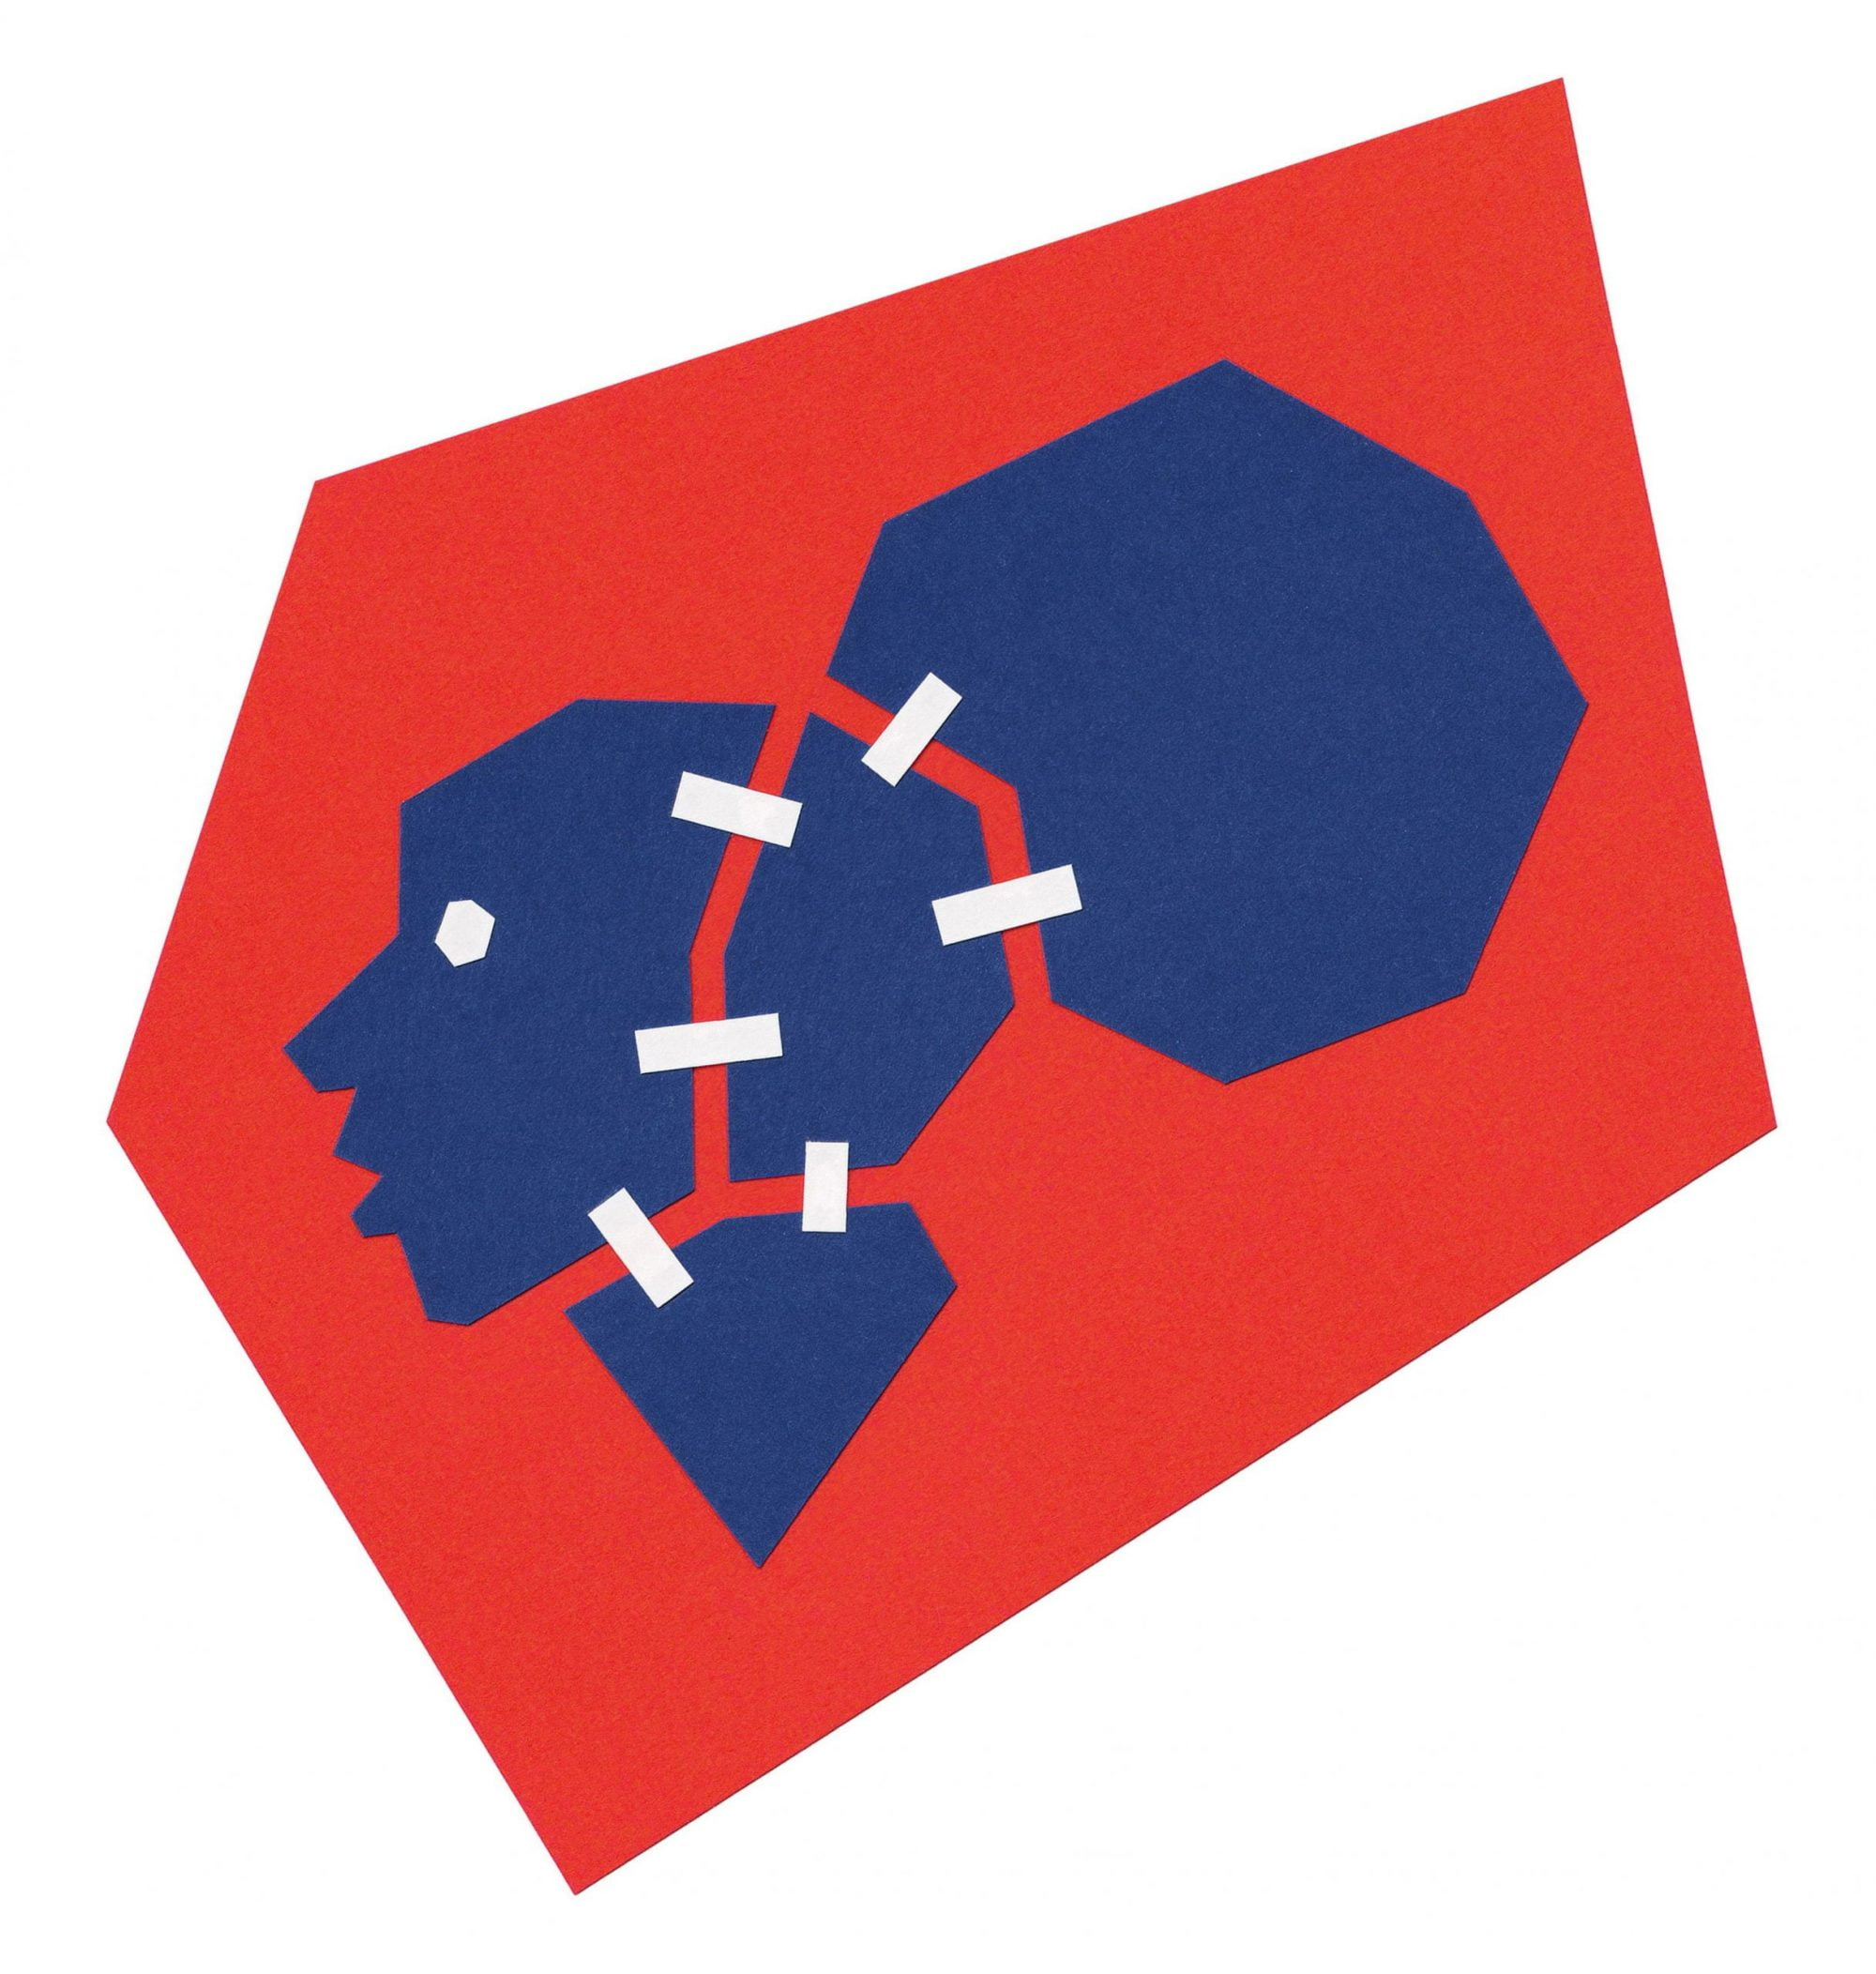 On a white square background sits a dark red rhomboid shape. In this shape is the profile of a deep blue head fractured into four pieces that is held together by small white rectangles resembling tape. The head is turned to our left and shows a small white circle representing the eye on the head.